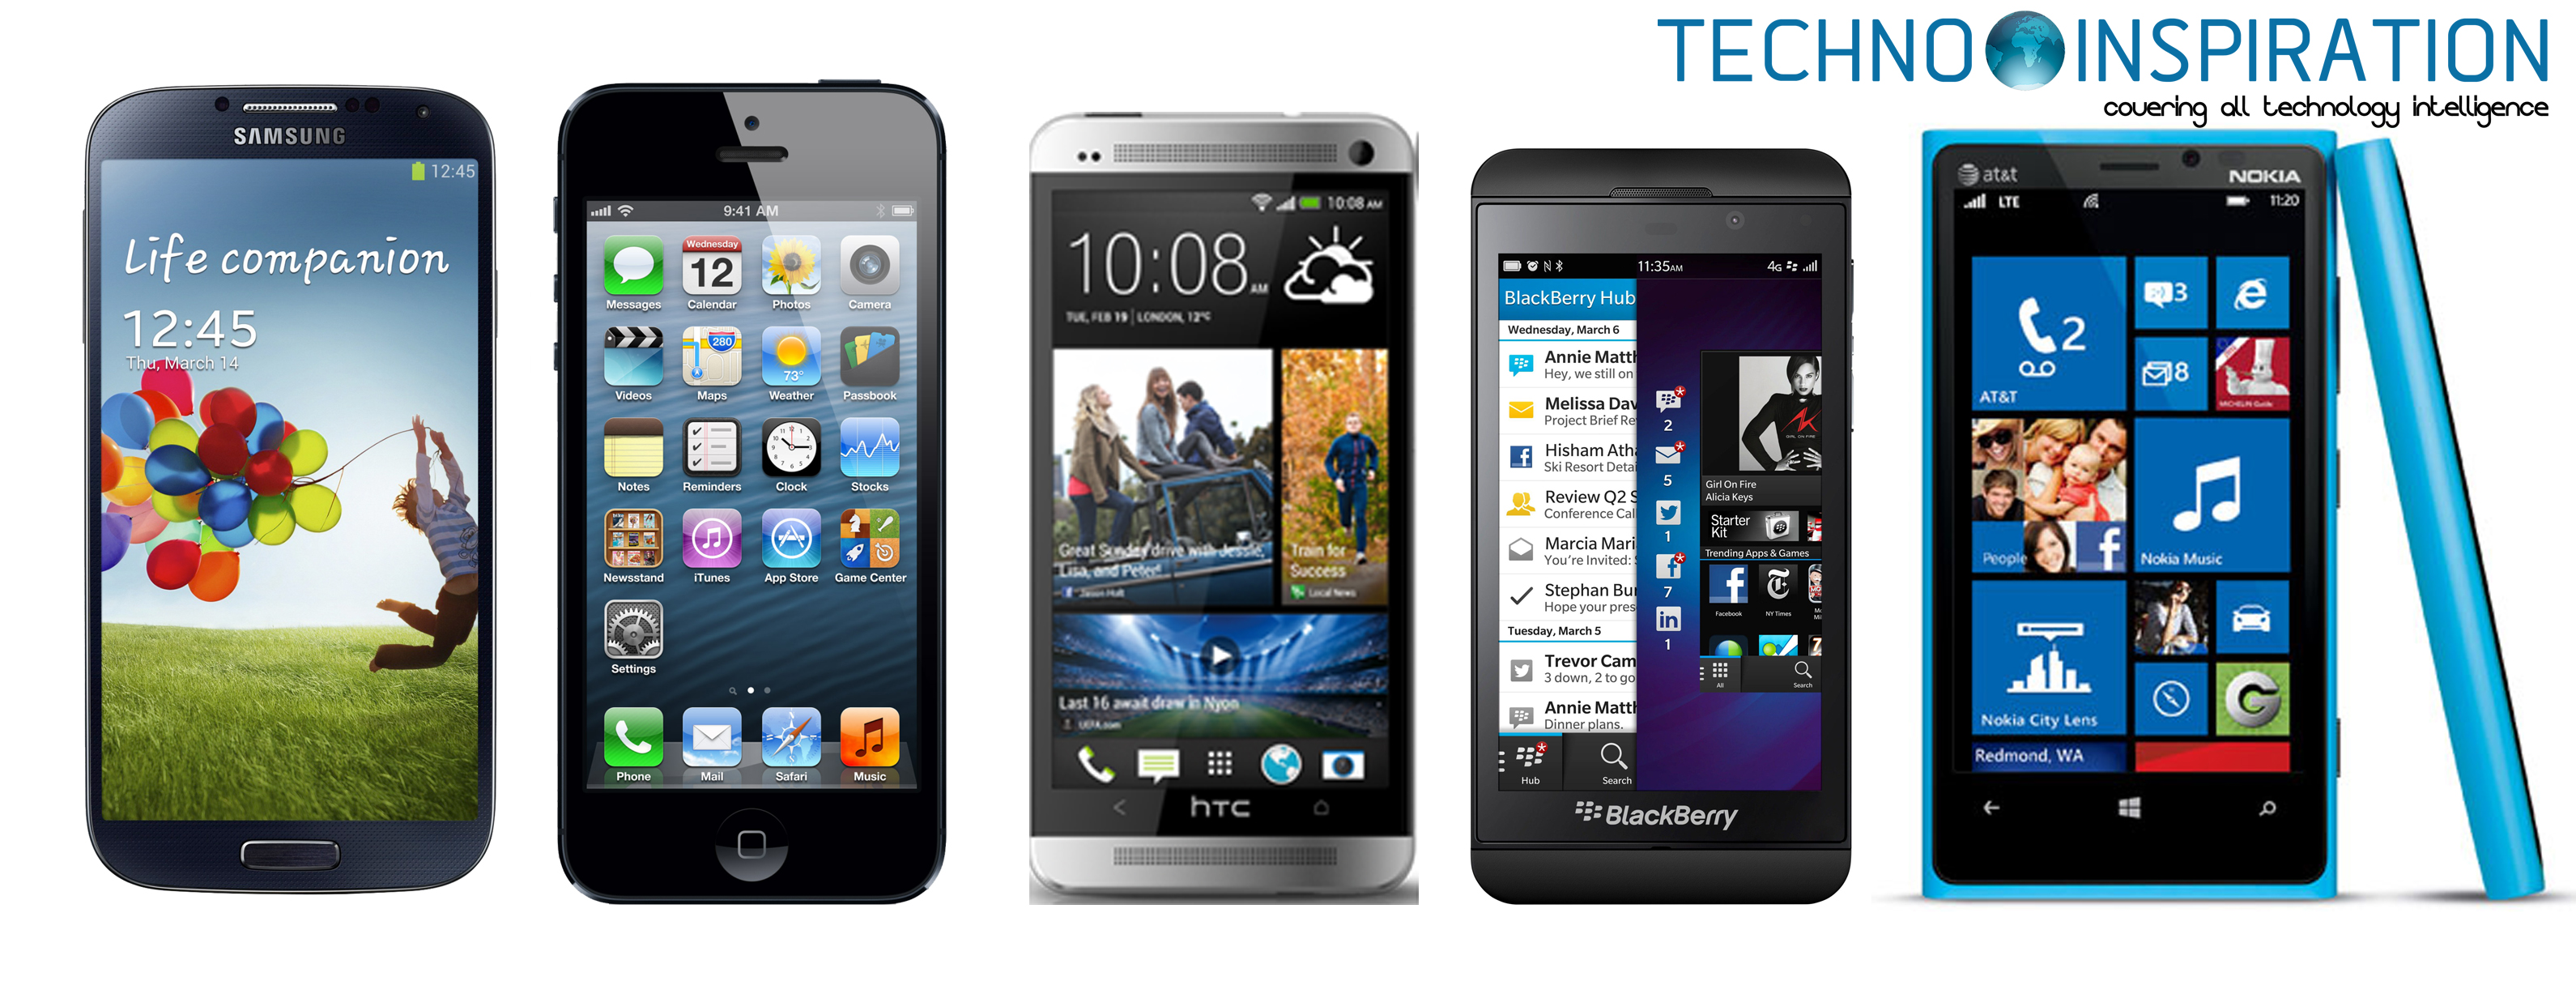 Galaxy s4 vs Iphone 5 vs Htc